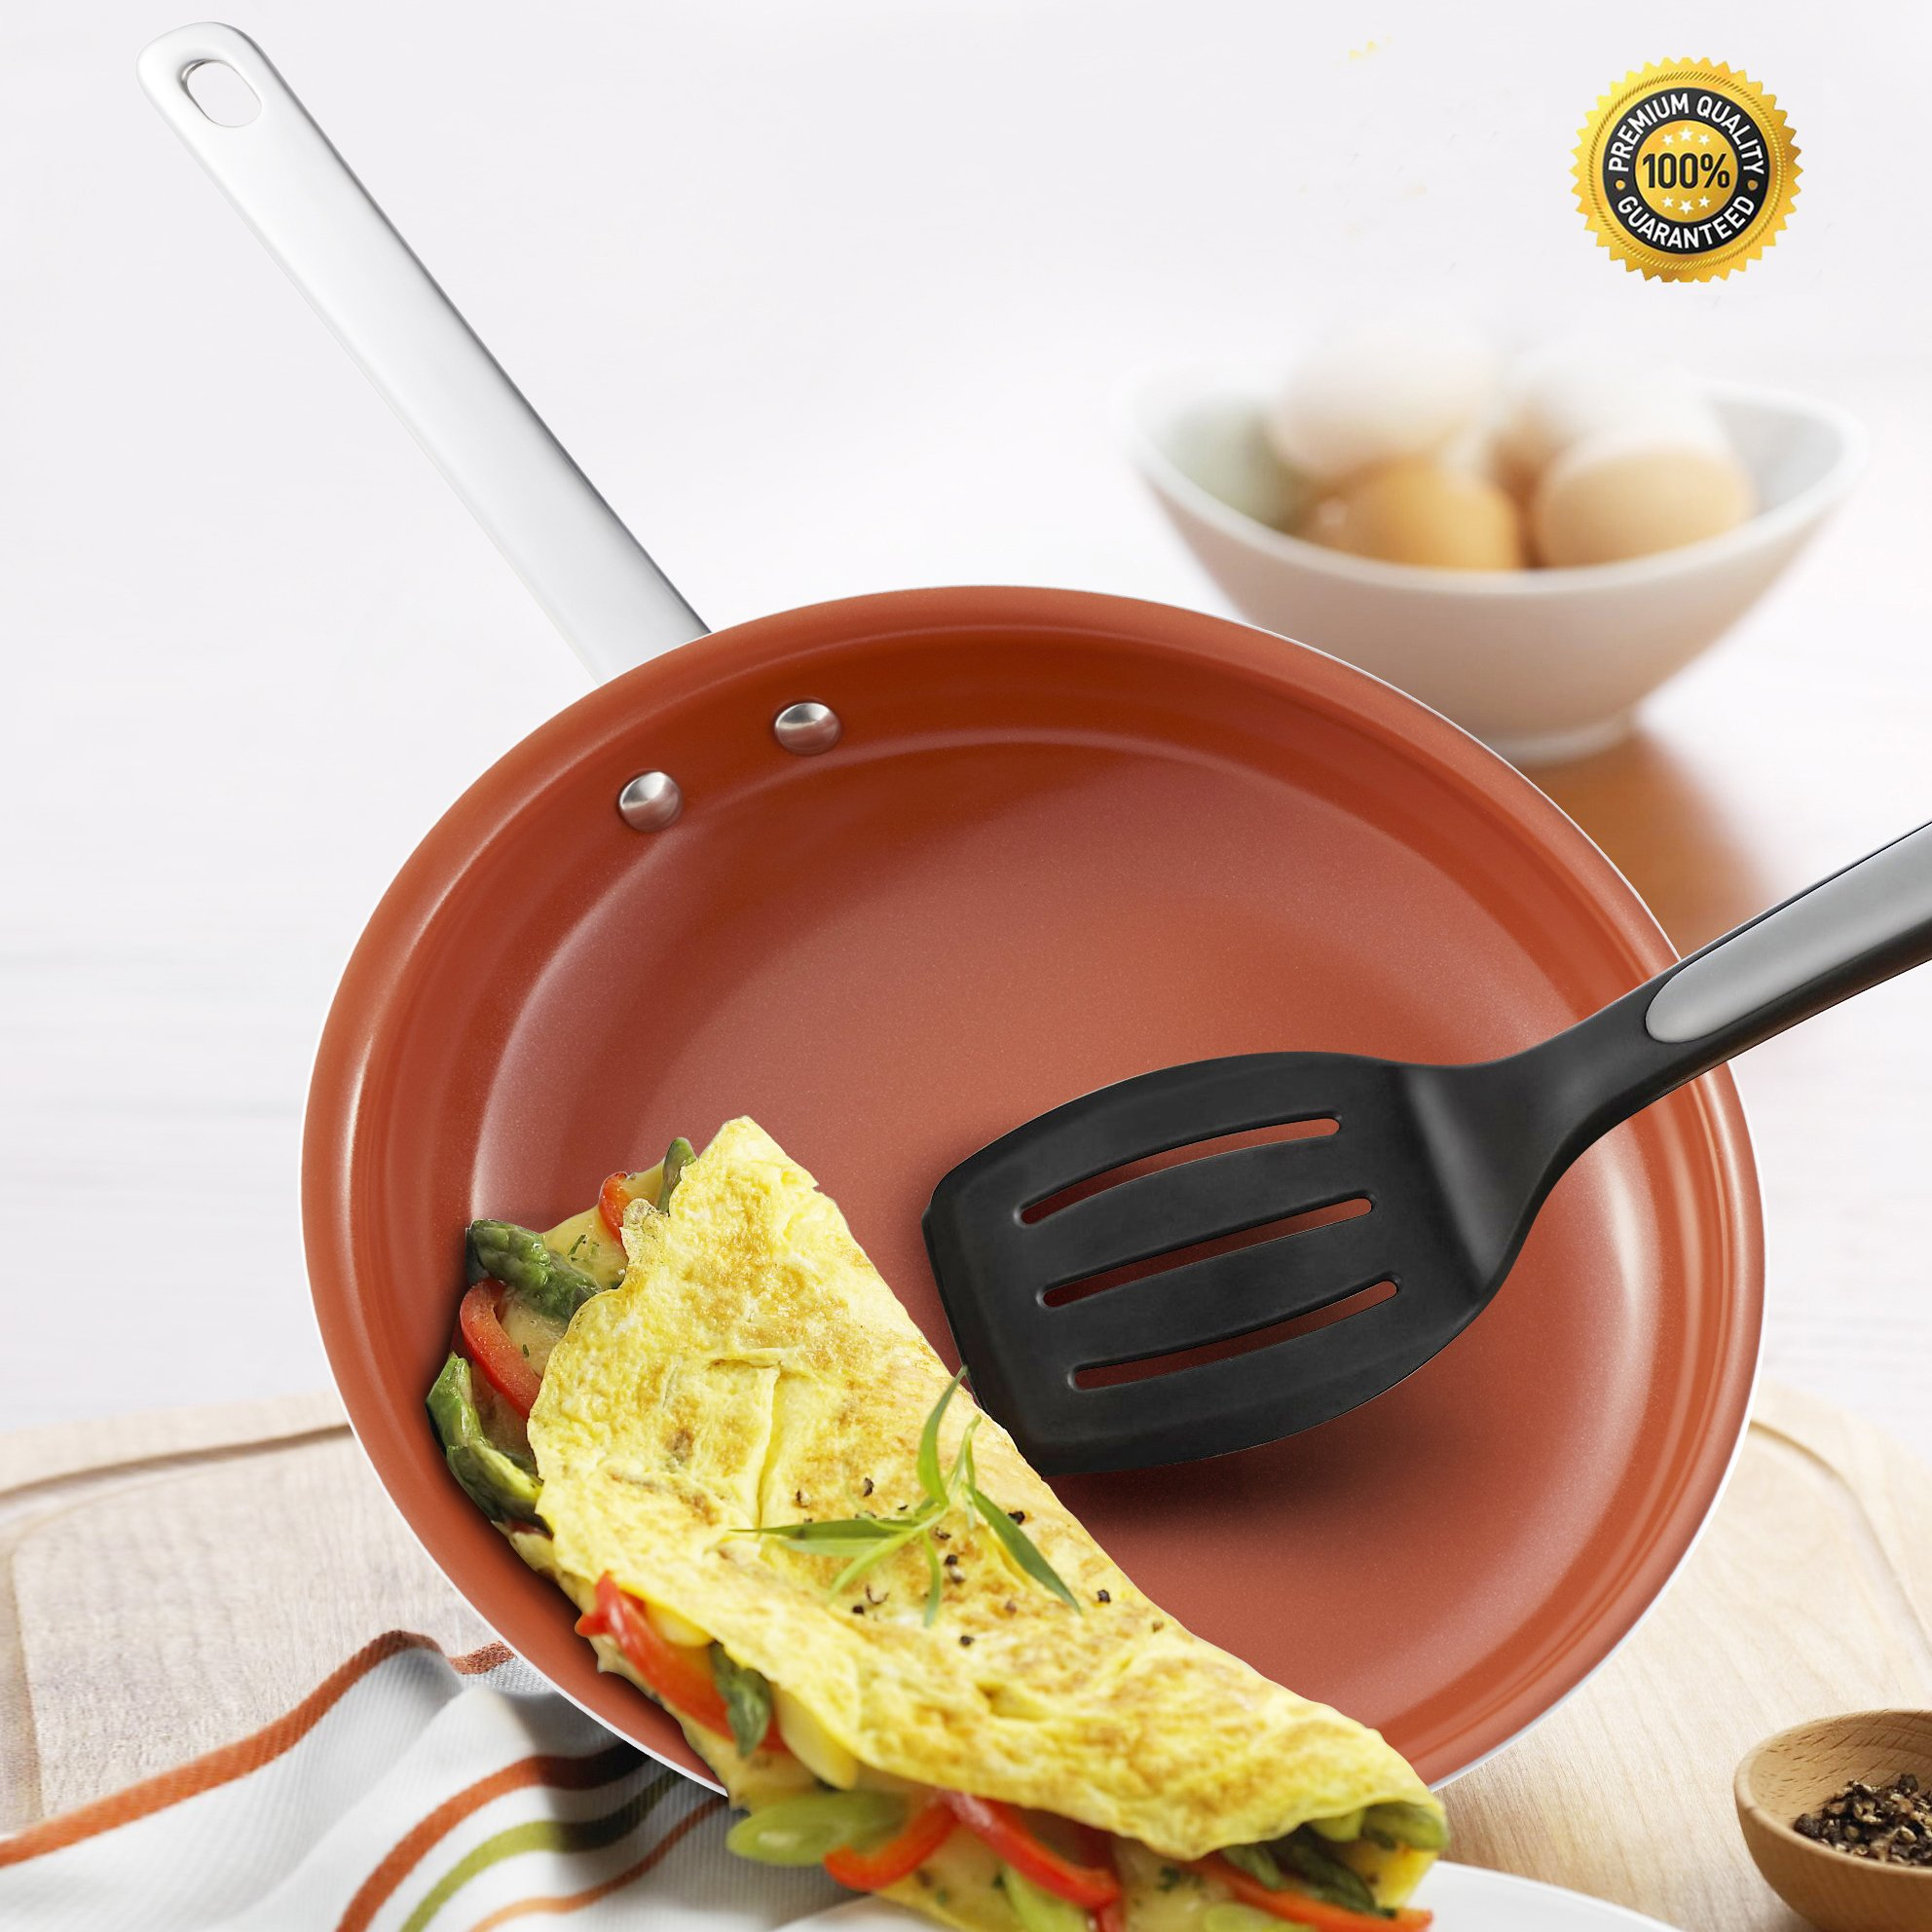 9 Inch Healthy Green Ceramic Non Stick Fry/Frying Pans,Small egg/Omelet/Omelette Pan,Hommate Organic Ceramic Titanium Pan/Cookware/Skillet,Non Toxic,PTFE/PFOA Free,Oven Safe 400F,Dishwasher Safe